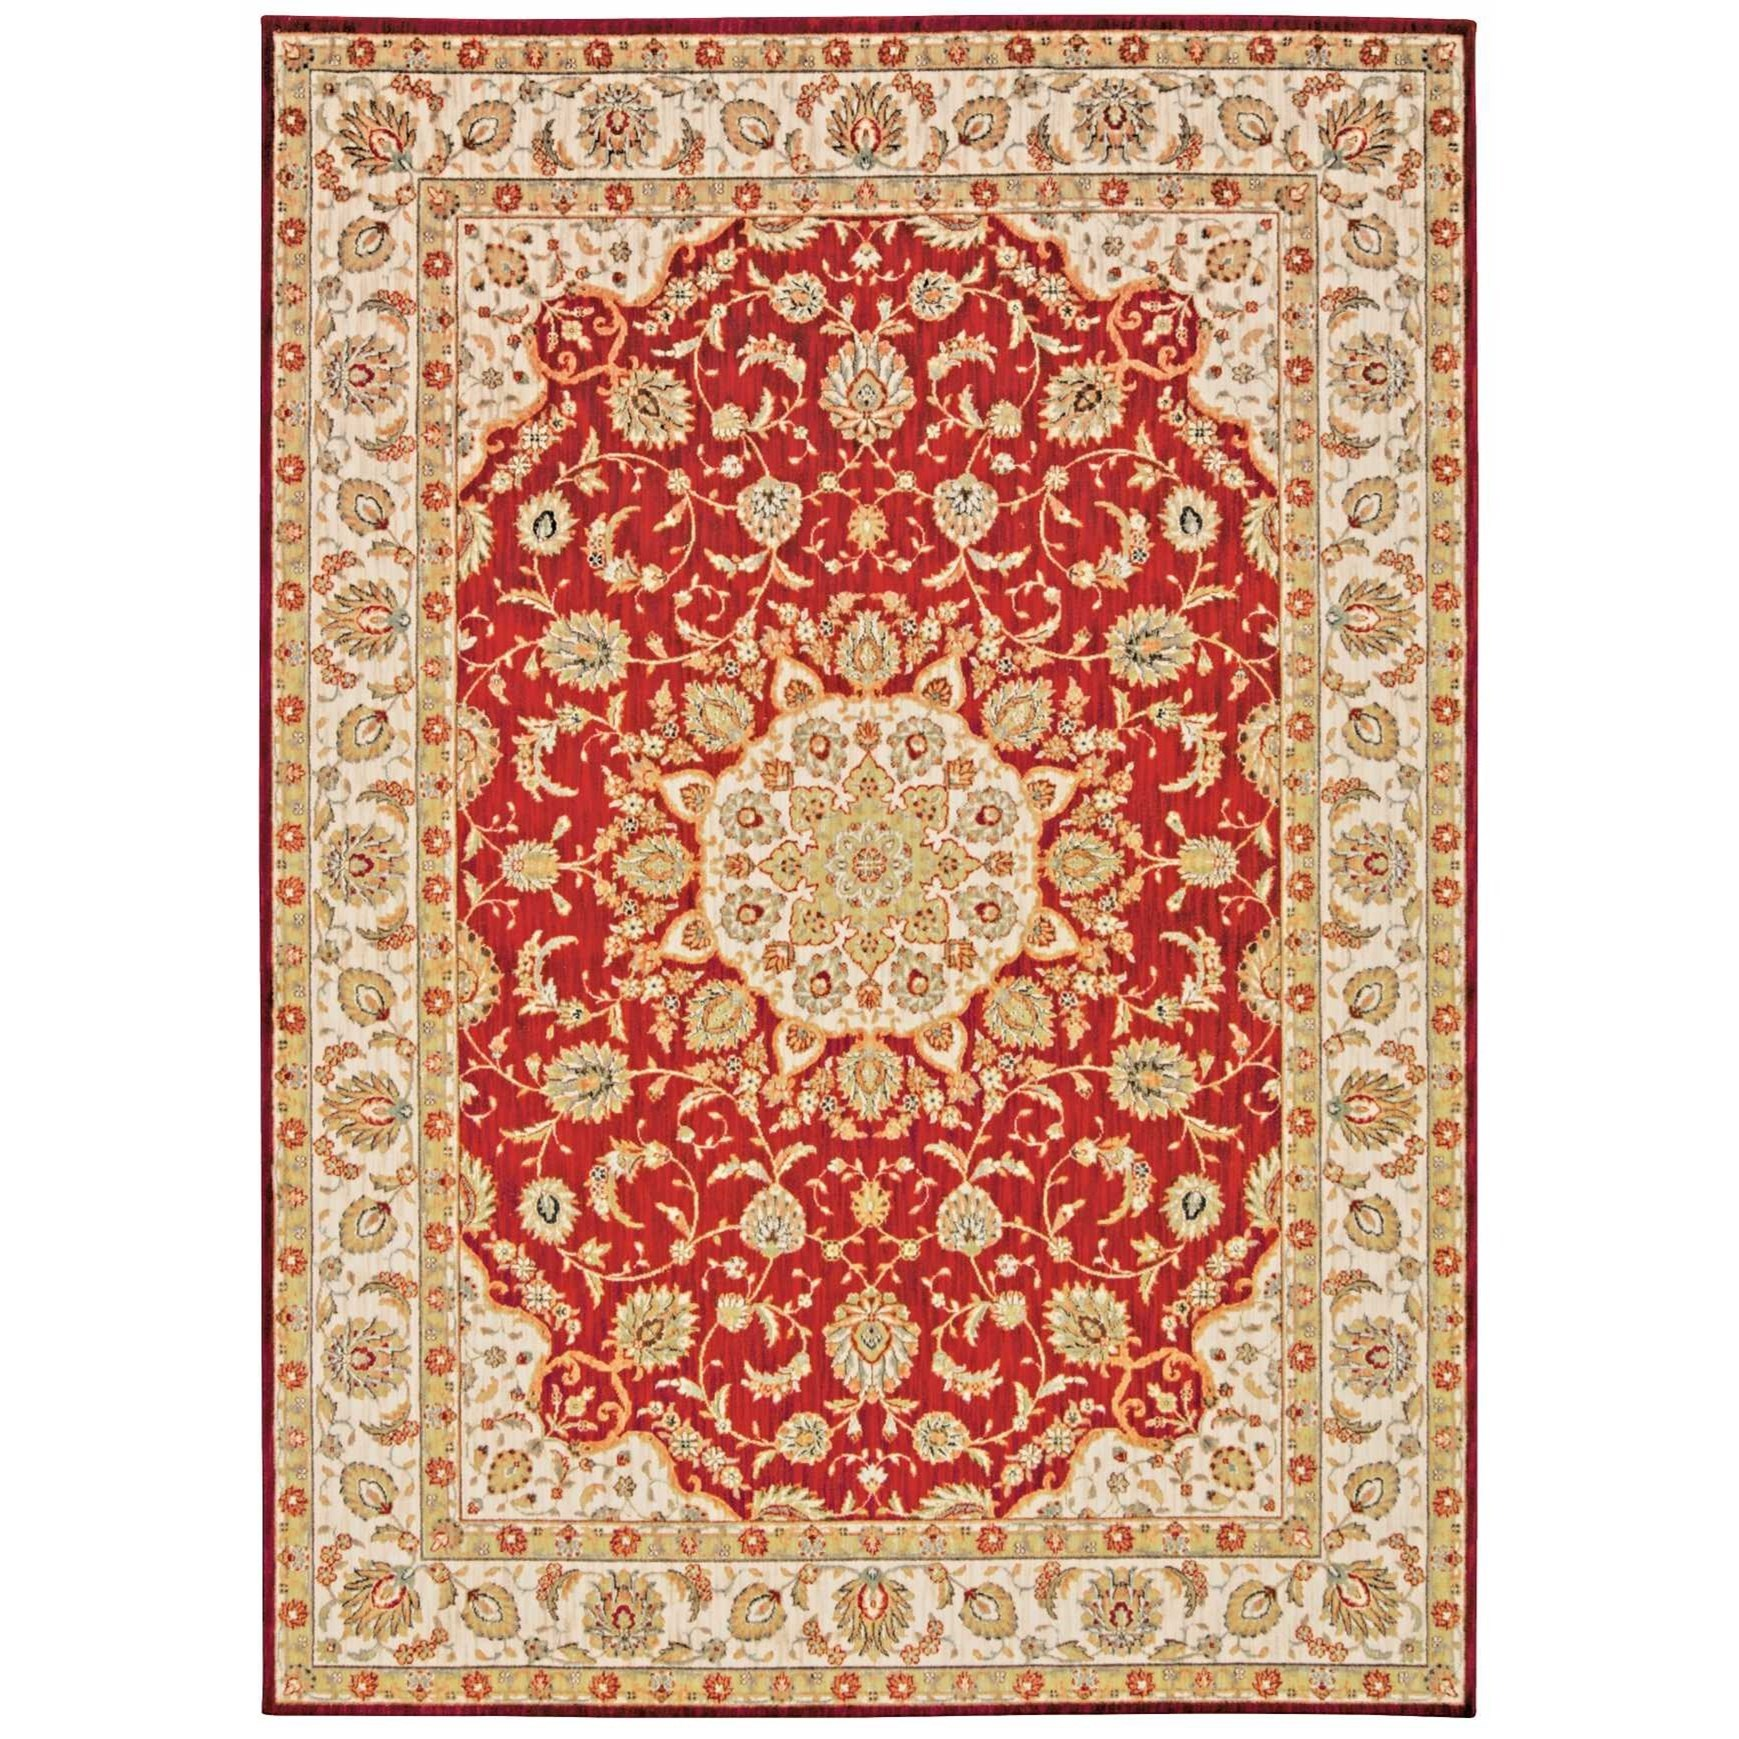 "Ancient Times 3'9"" x 5'9"" Rug by kathy ireland Home by Nourison at Home Collections Furniture"